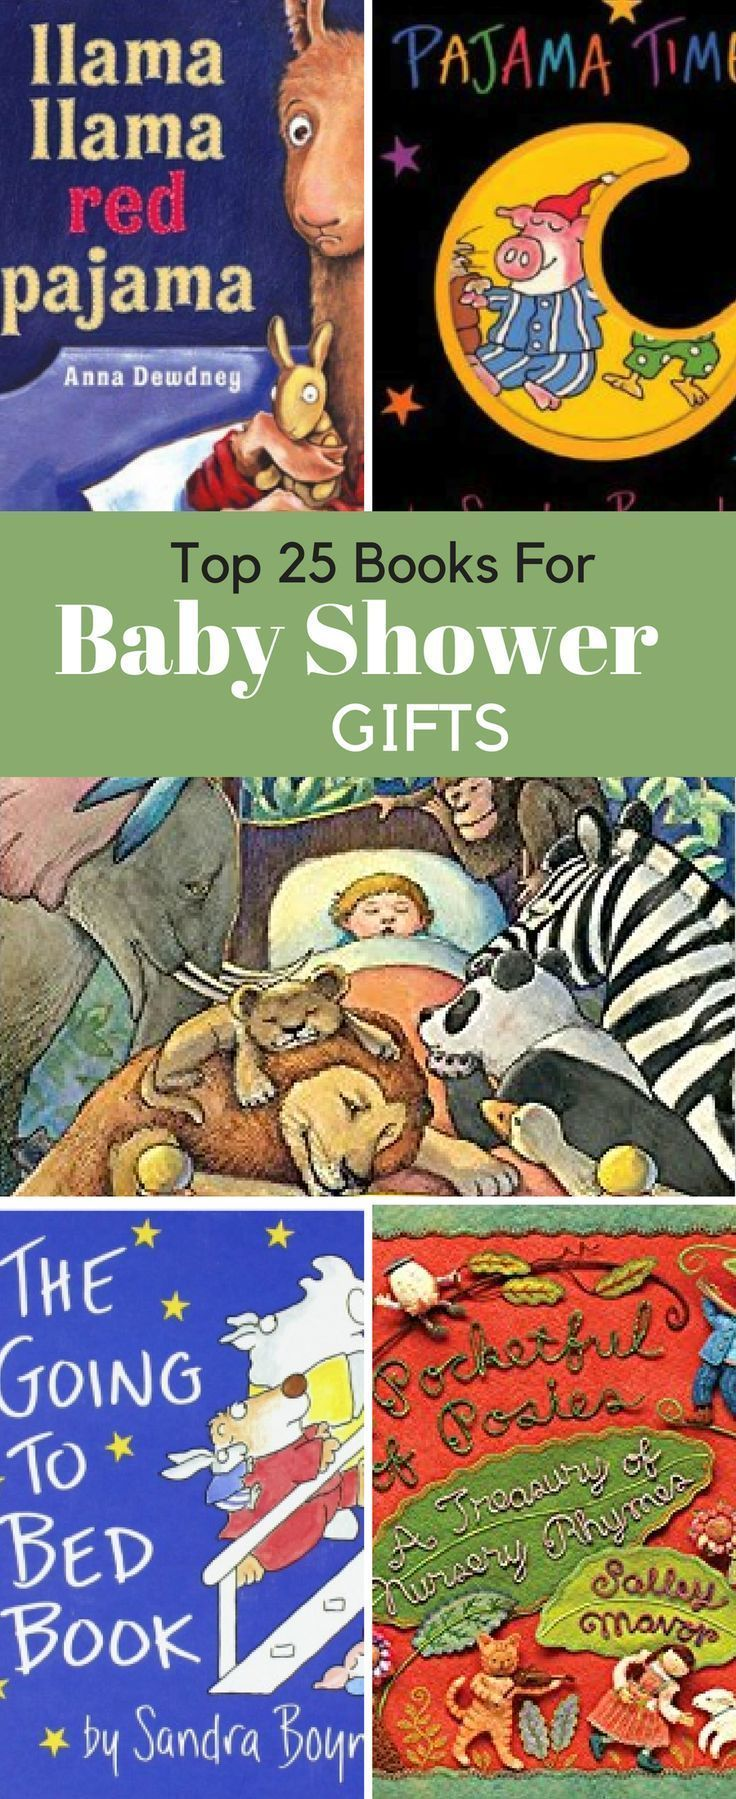 Top 25 Books For Baby Shower Gifts Best Baby Shower Gifts